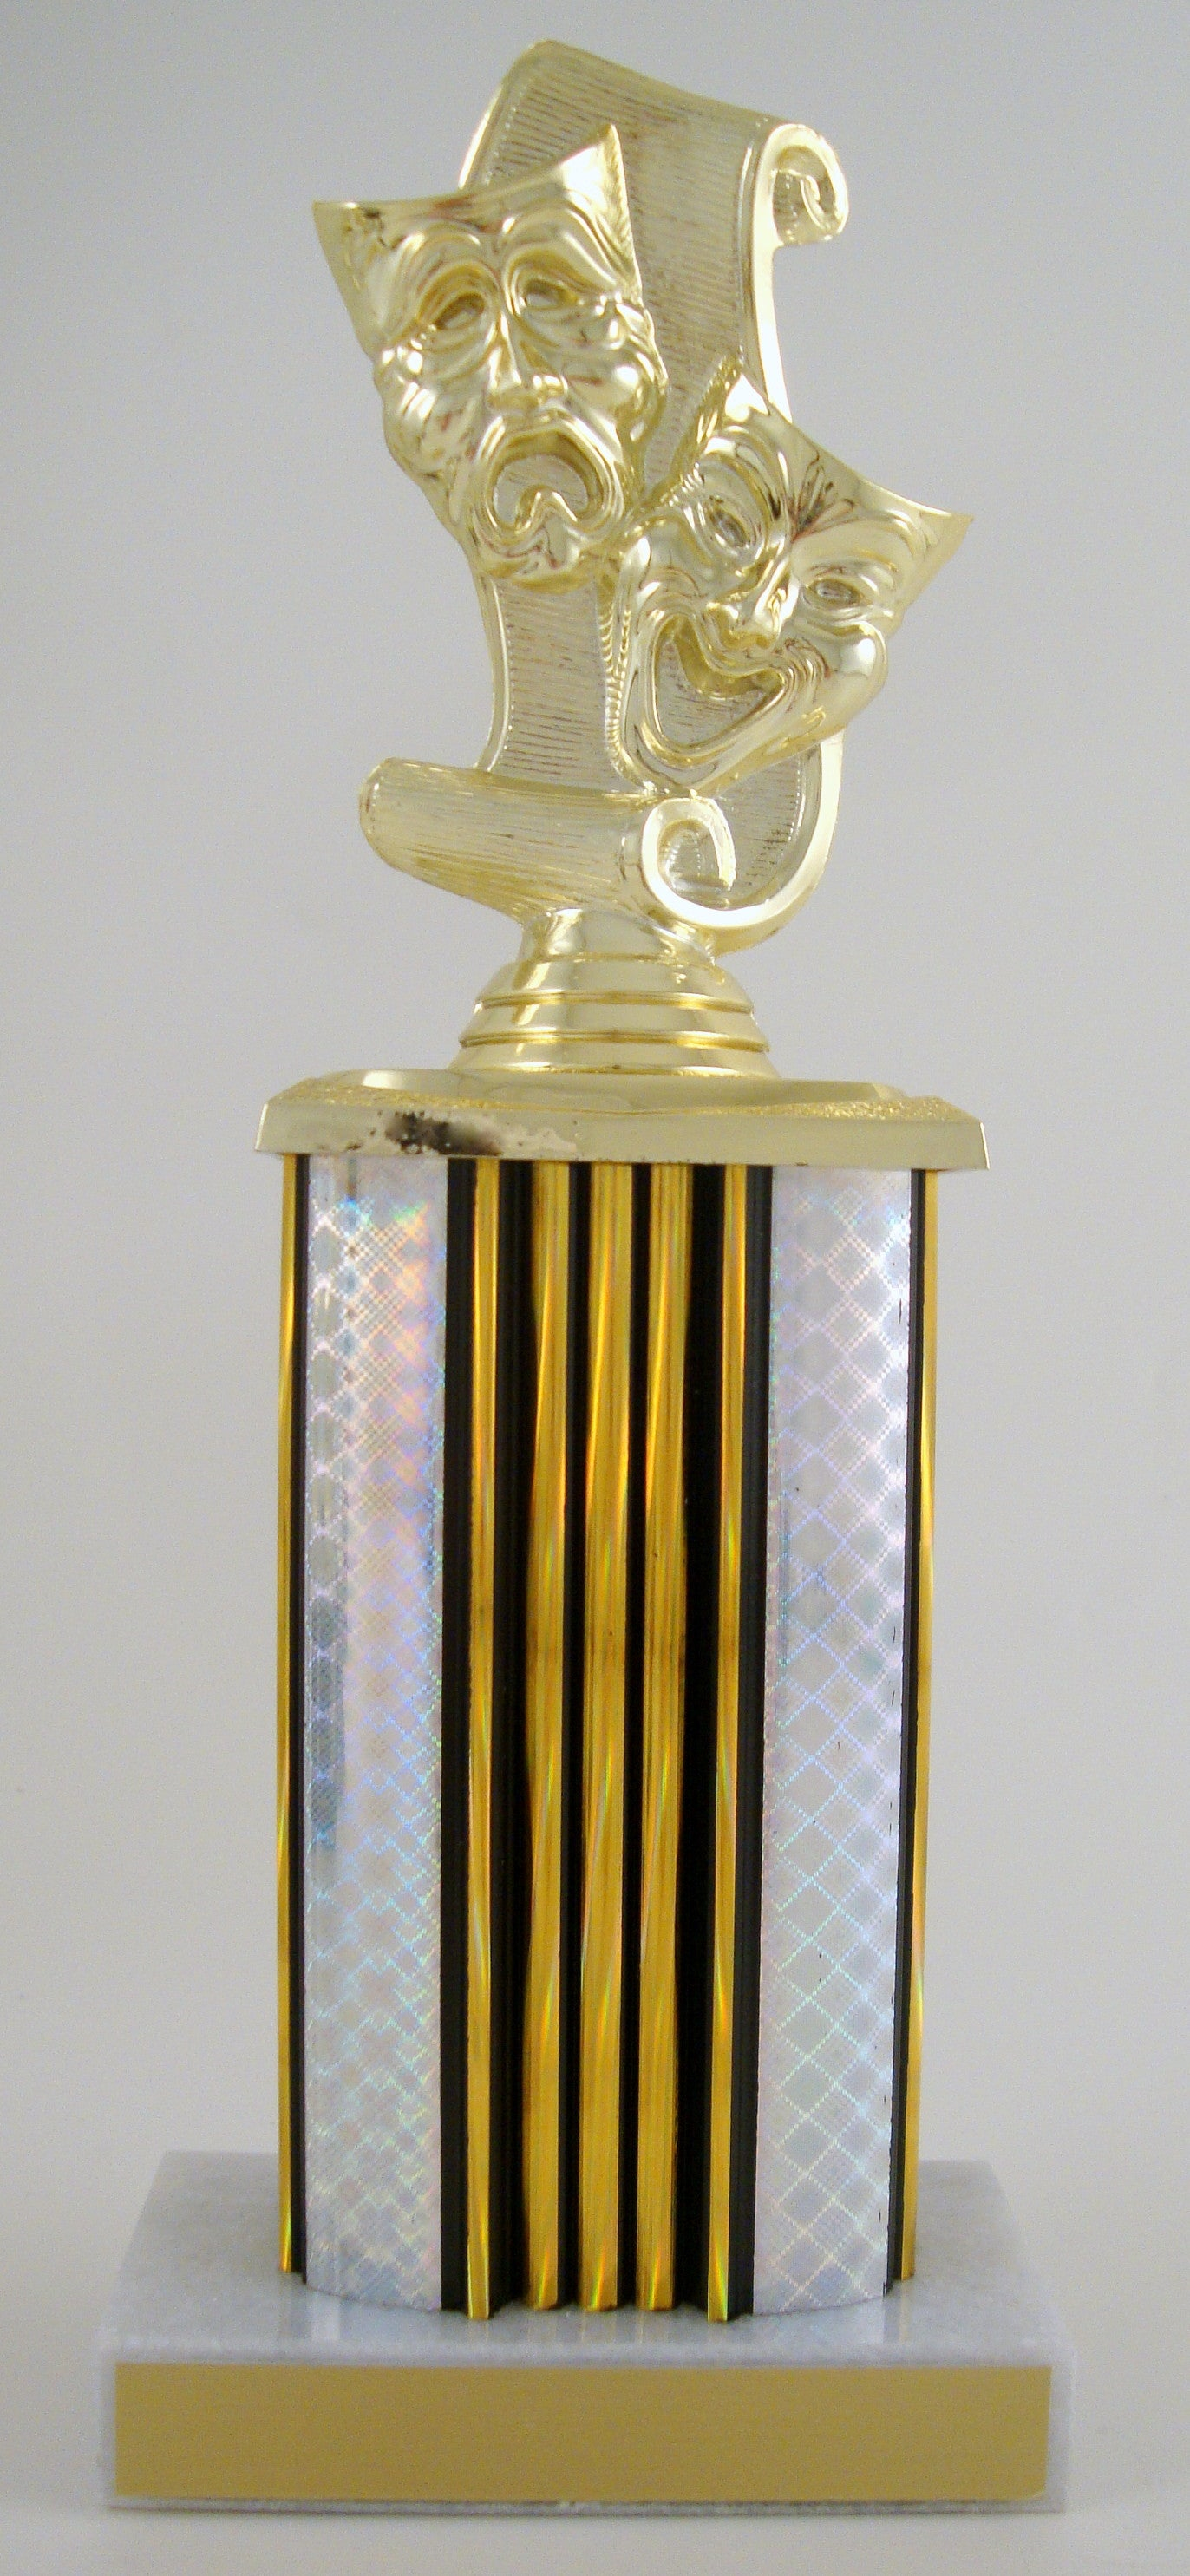 Drama Mask Trophy With Rectangular Column-Trophies-Schoppy's Since 1921